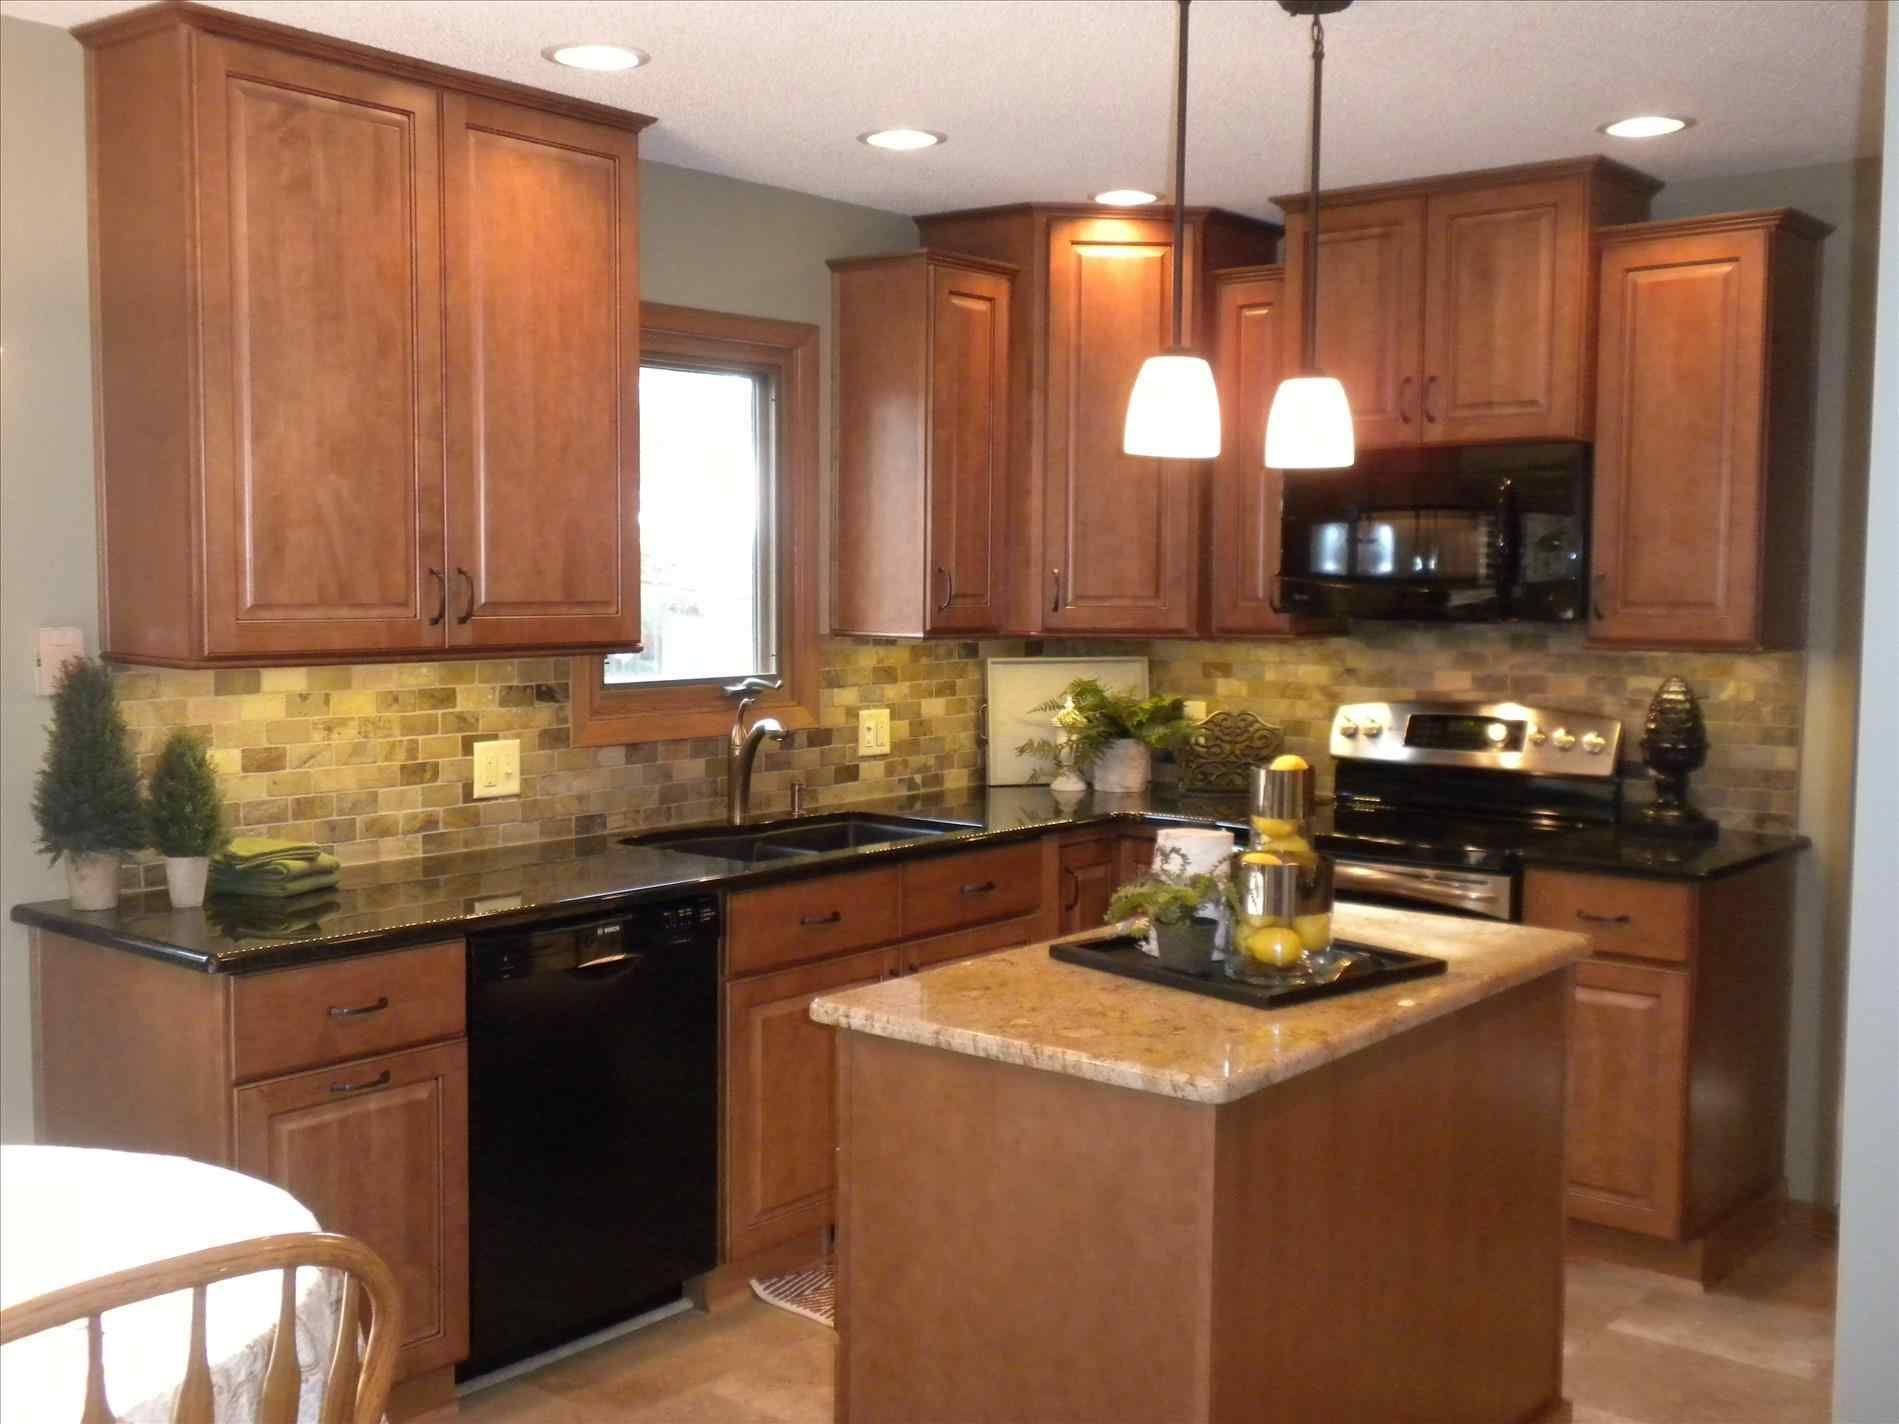 Black Stainless Steel Appliances With Oak Cabinets Colors And Countertops Popular Small Design